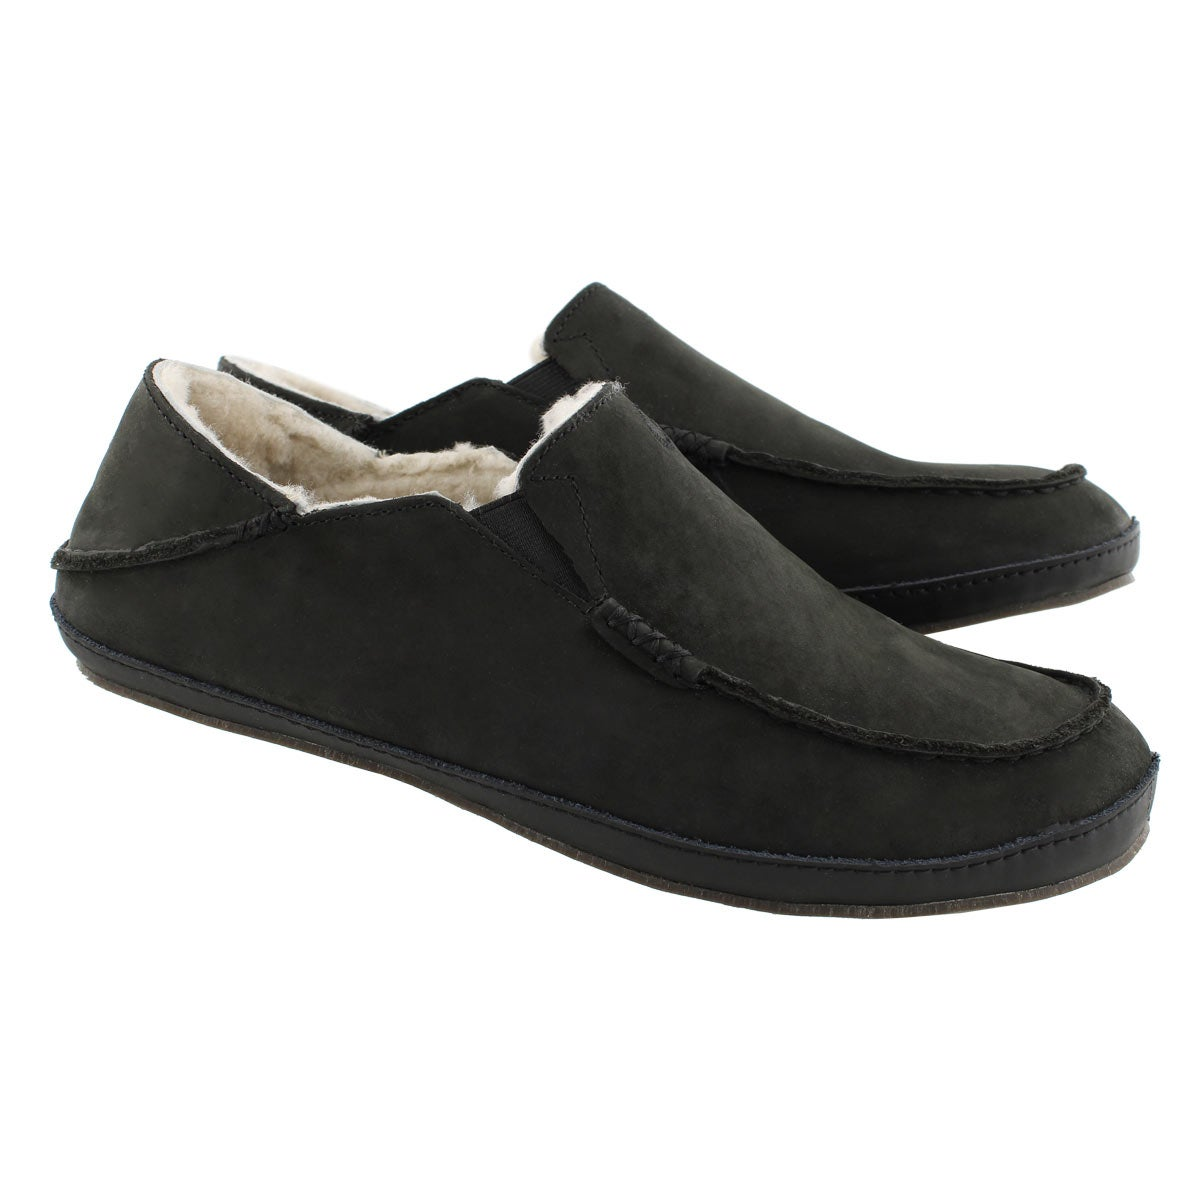 Mns Moloa onyx drop in heel slipper